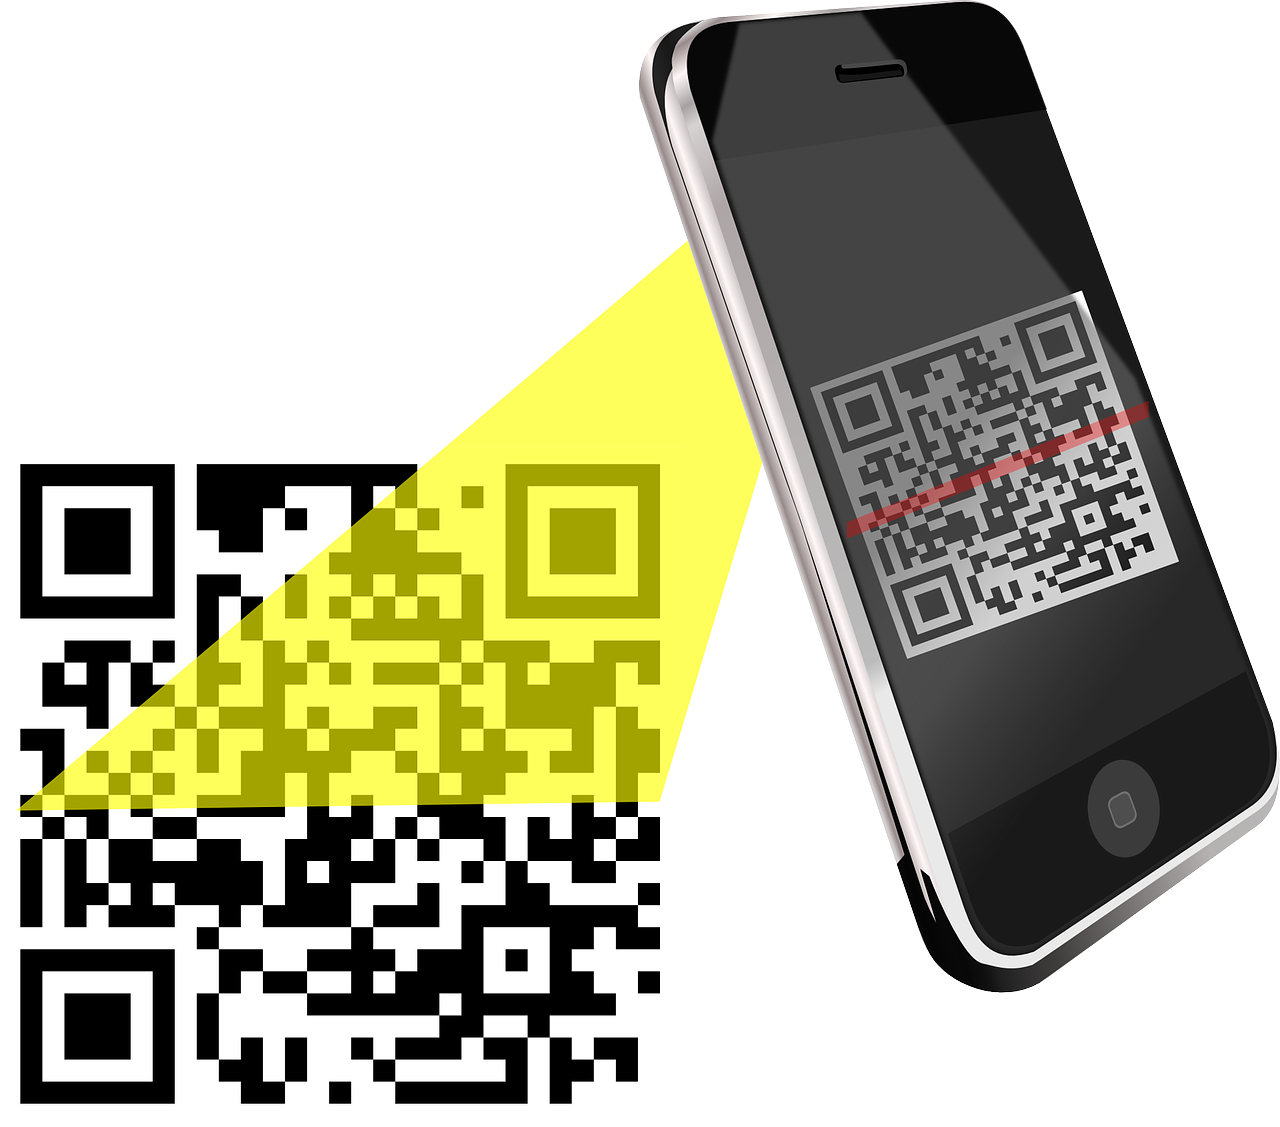 code,scan,qr-code,handy,phone,scanning,smartphone,quick response code,matrix barcode,barcode,two-dimensional barcode,free vector graphics,free pictures, free photos, free images, royalty free, free illustrations, public domain